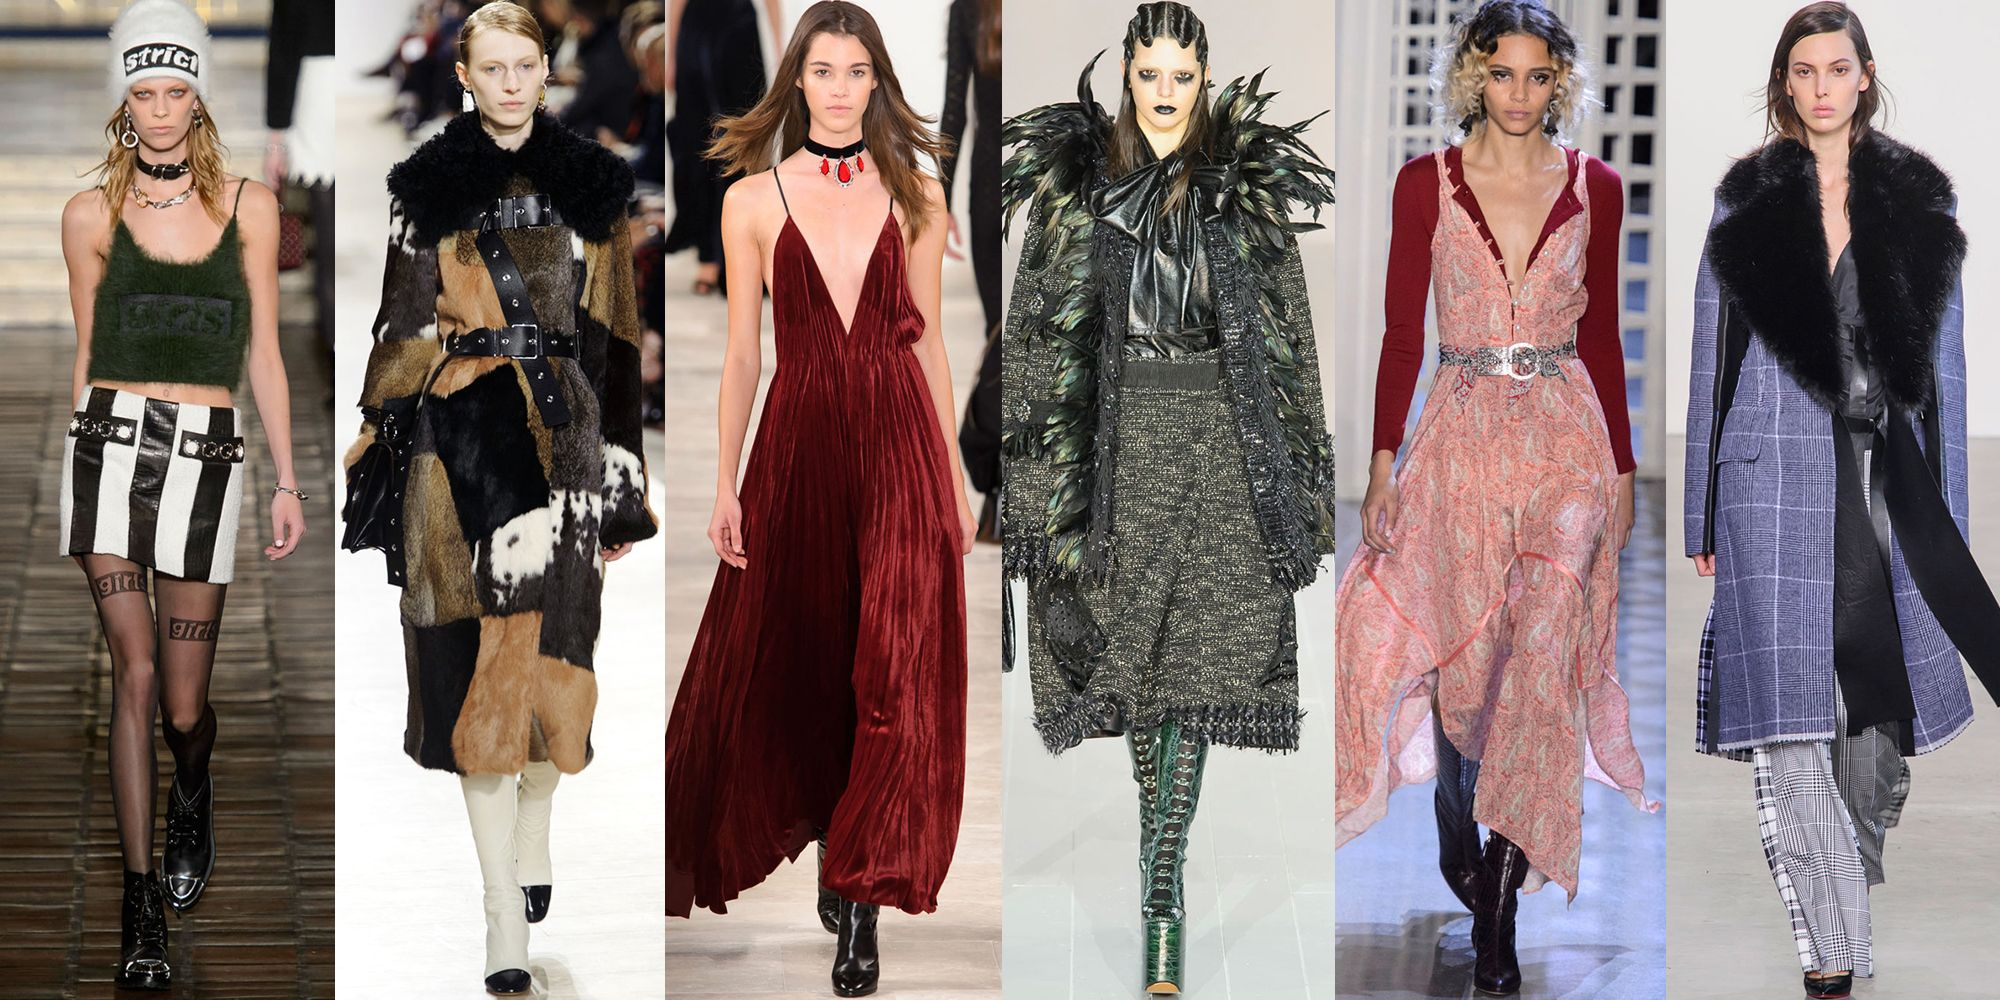 Fashion trends for fall - 9 Fall 2016 Trends To Know From New York Fashion Week